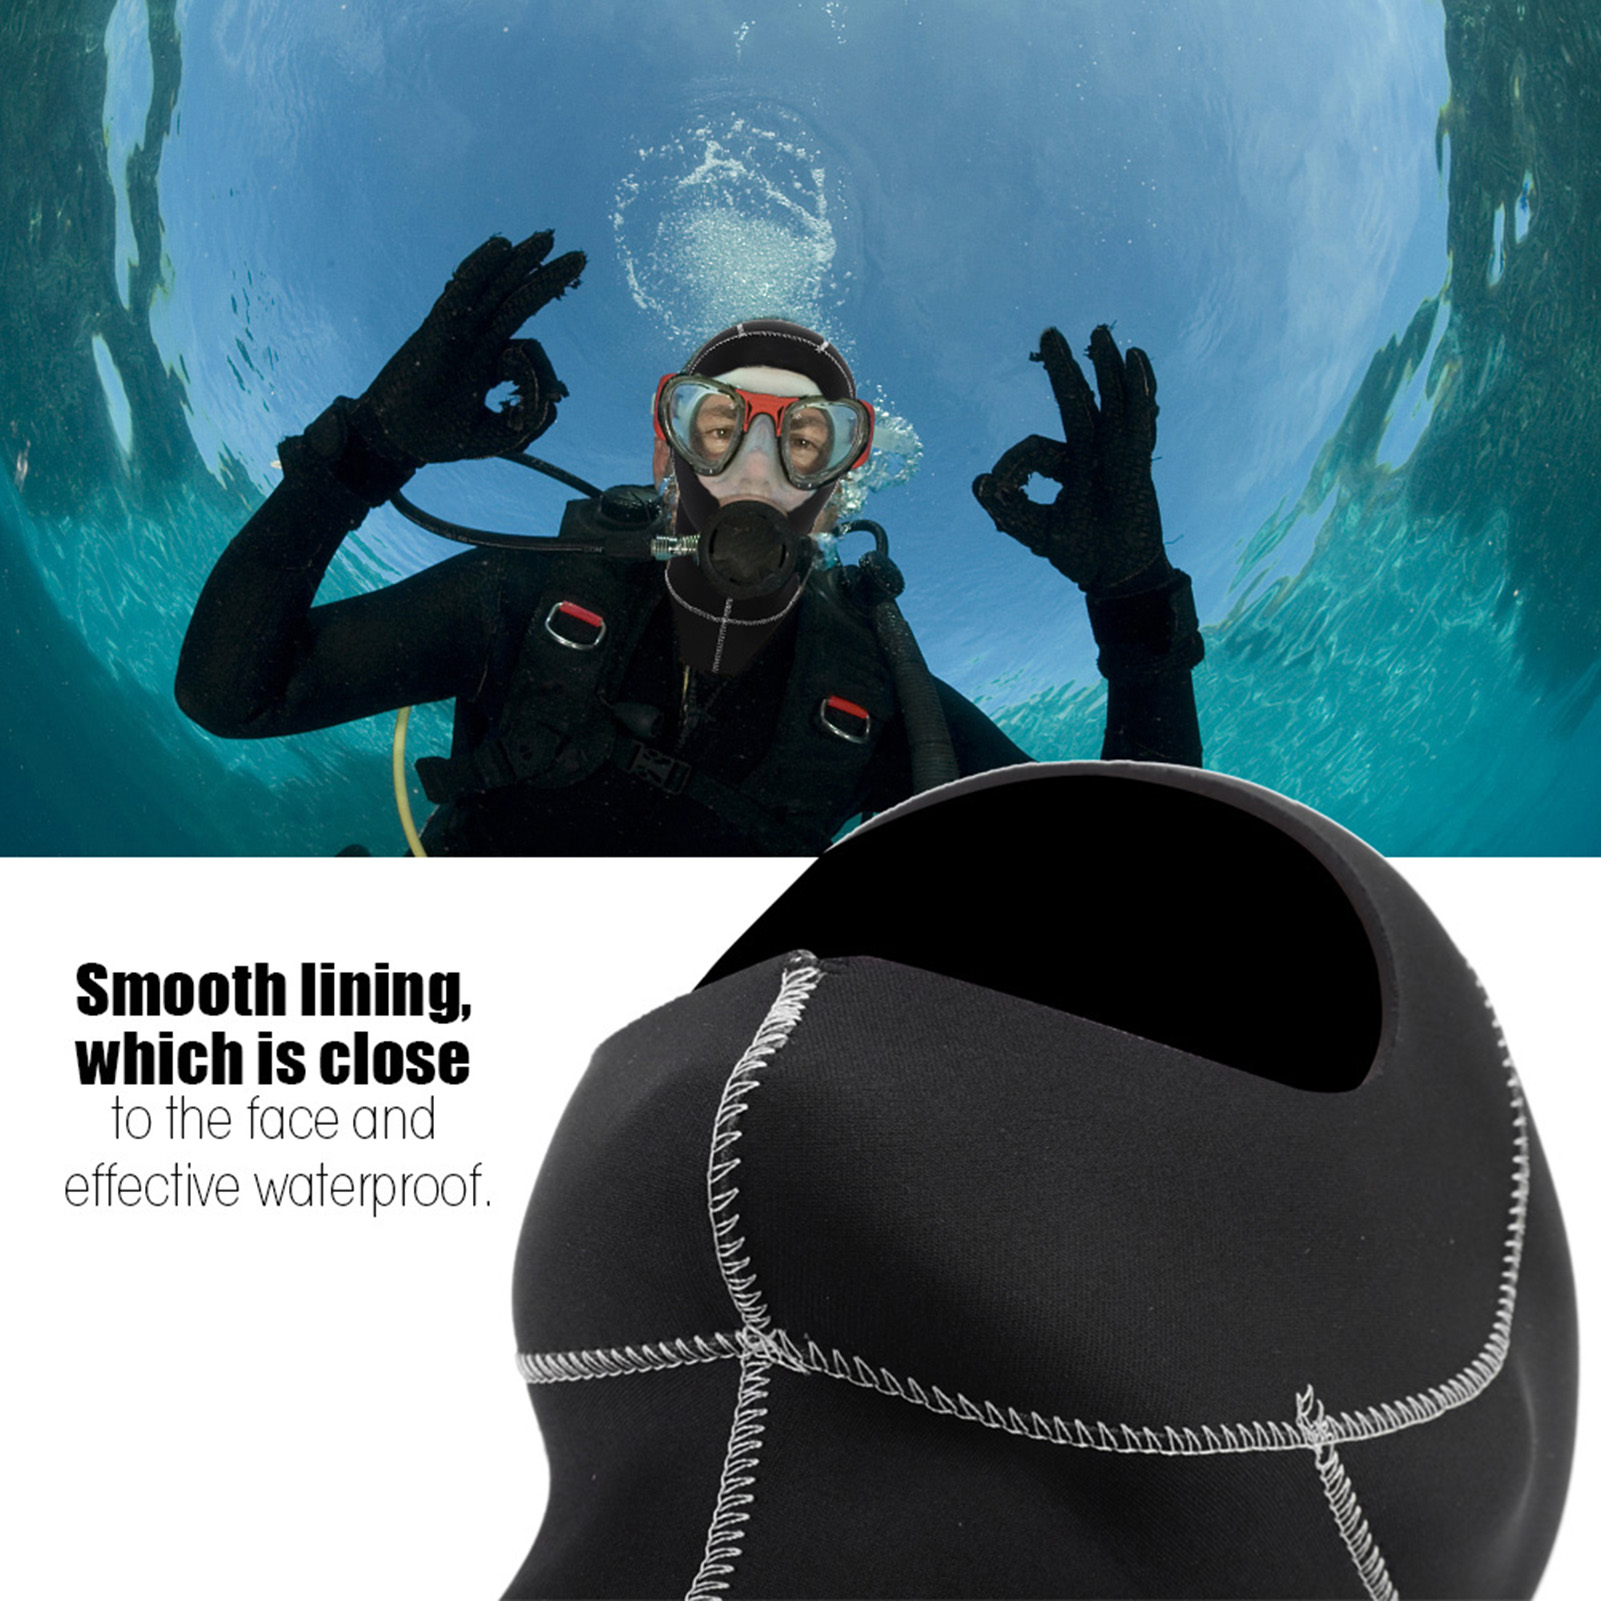 3mm-Neoprene-Scuba-Diving-Cap-Swimming-Warm-keeping-Wetsuit-Snorkeling-Hat-Hood thumbnail 17